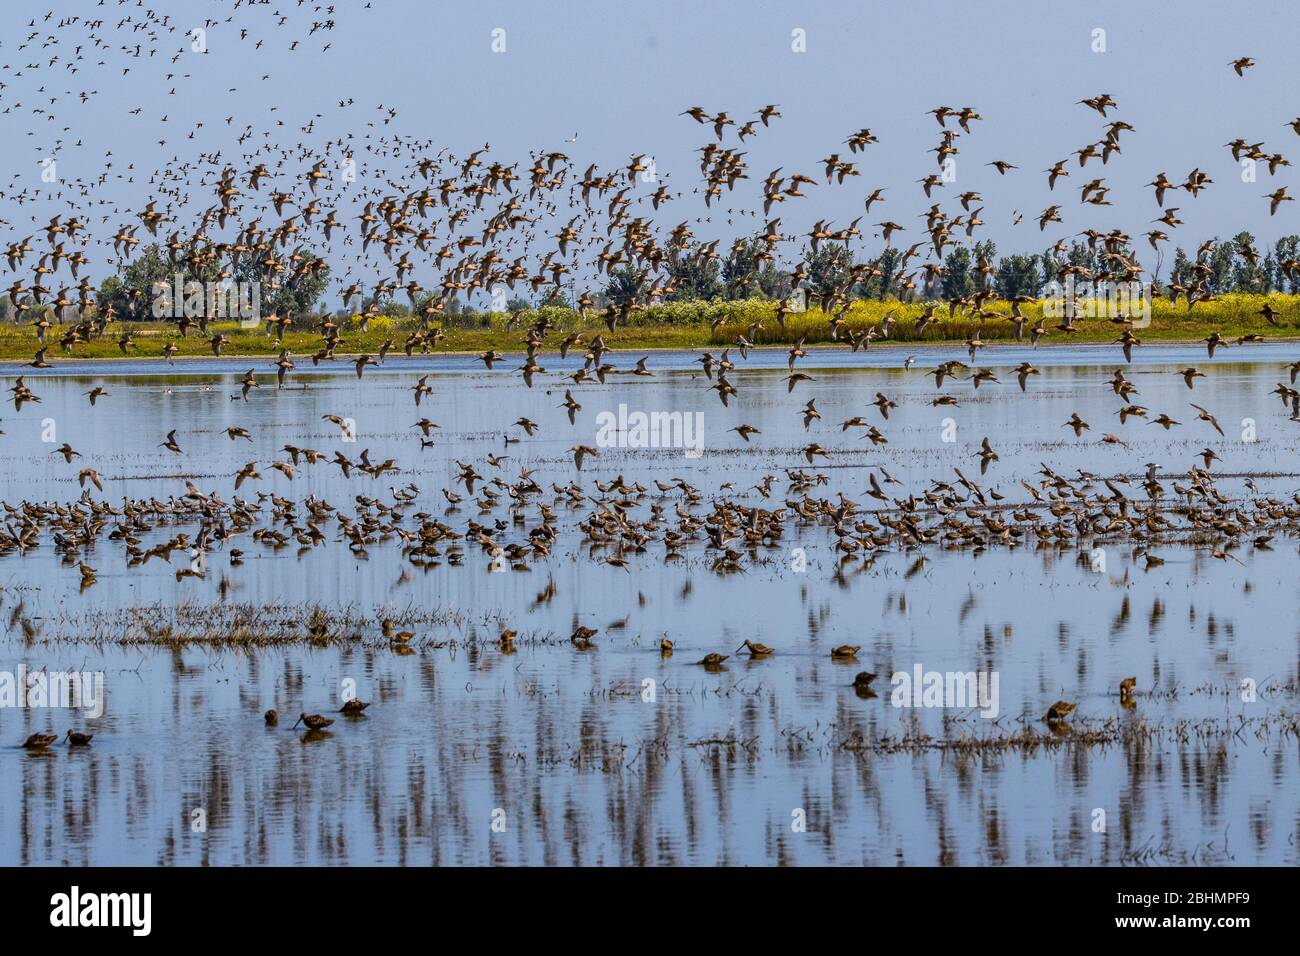 shorebirds-take-flight-at-the-merced-national-wildlife-refuge-in-the-central-valley-of-california-2BHMPF9.jpg